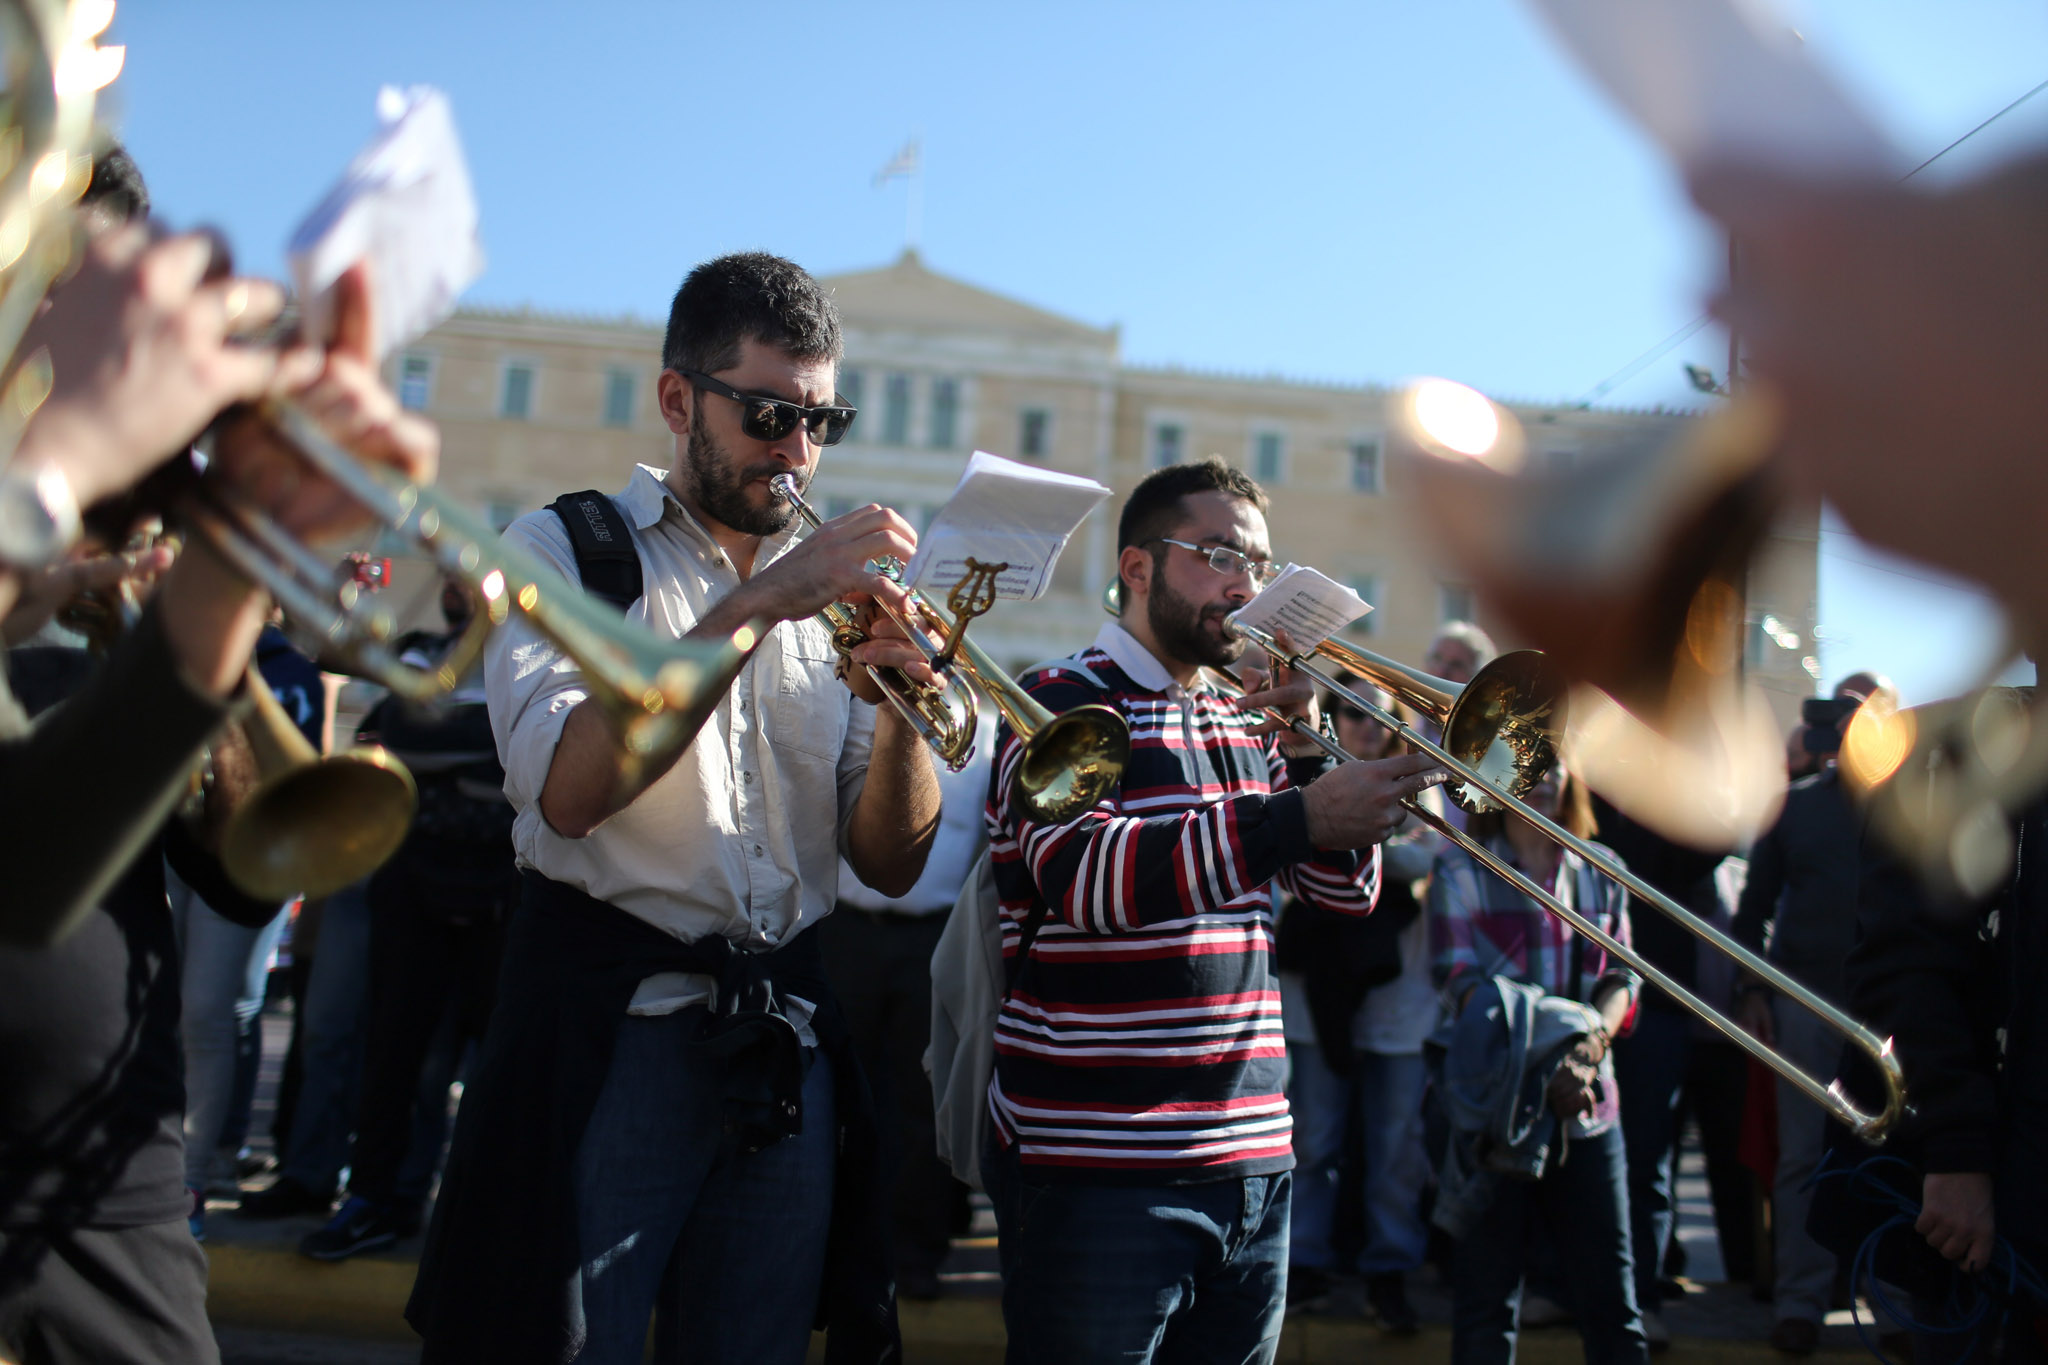 rotesting members of the PAME Communist-affiliated union play music outside the Greek parliament